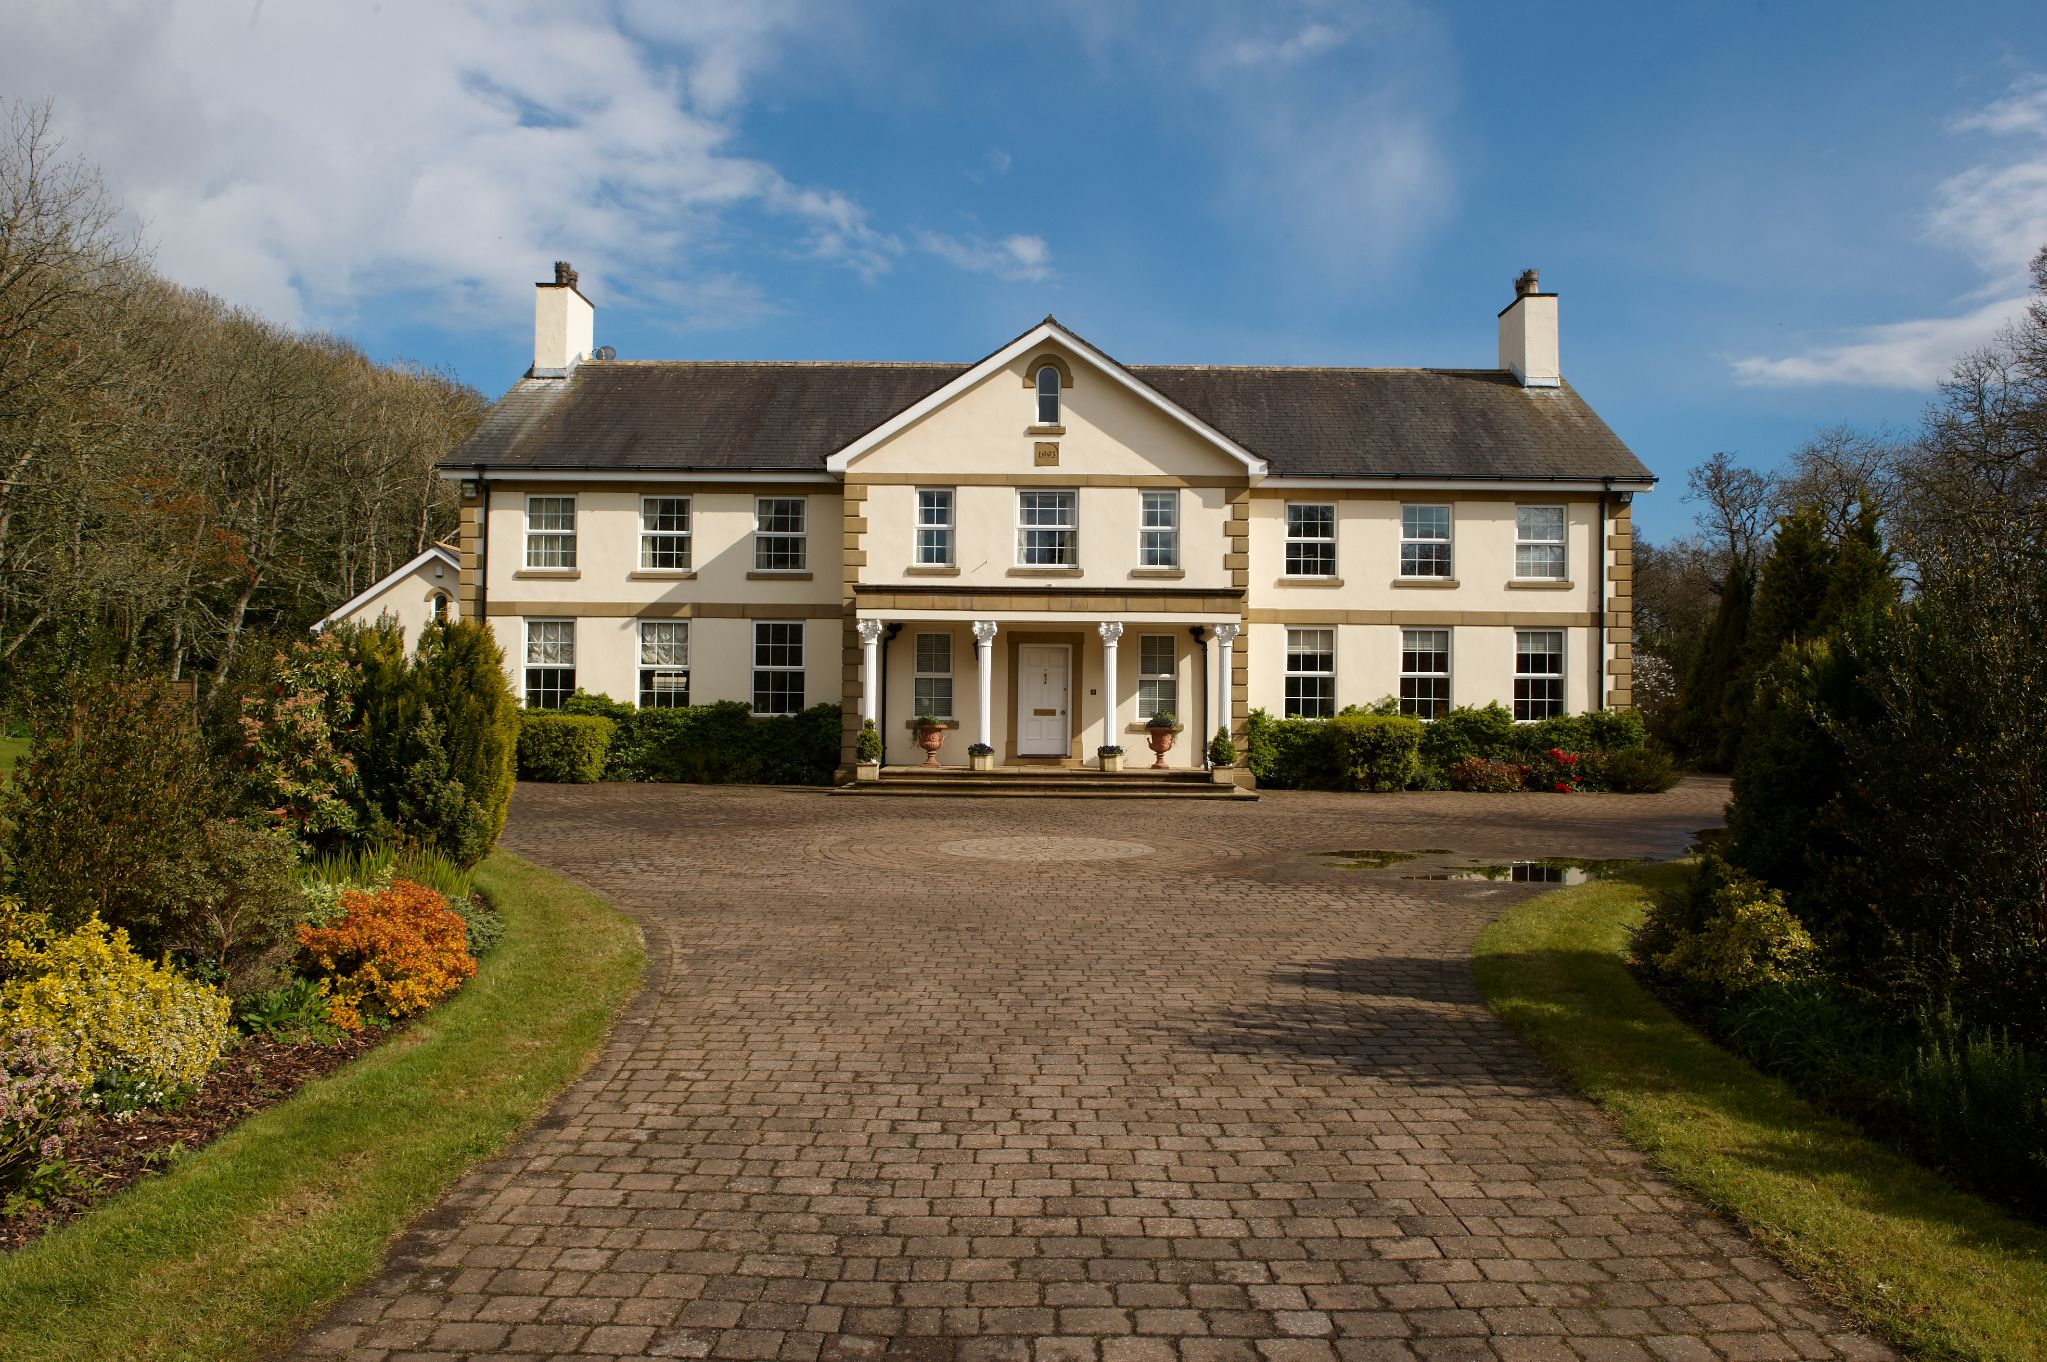 5 bedroom detached house For Sale in Onchan - Property photograph